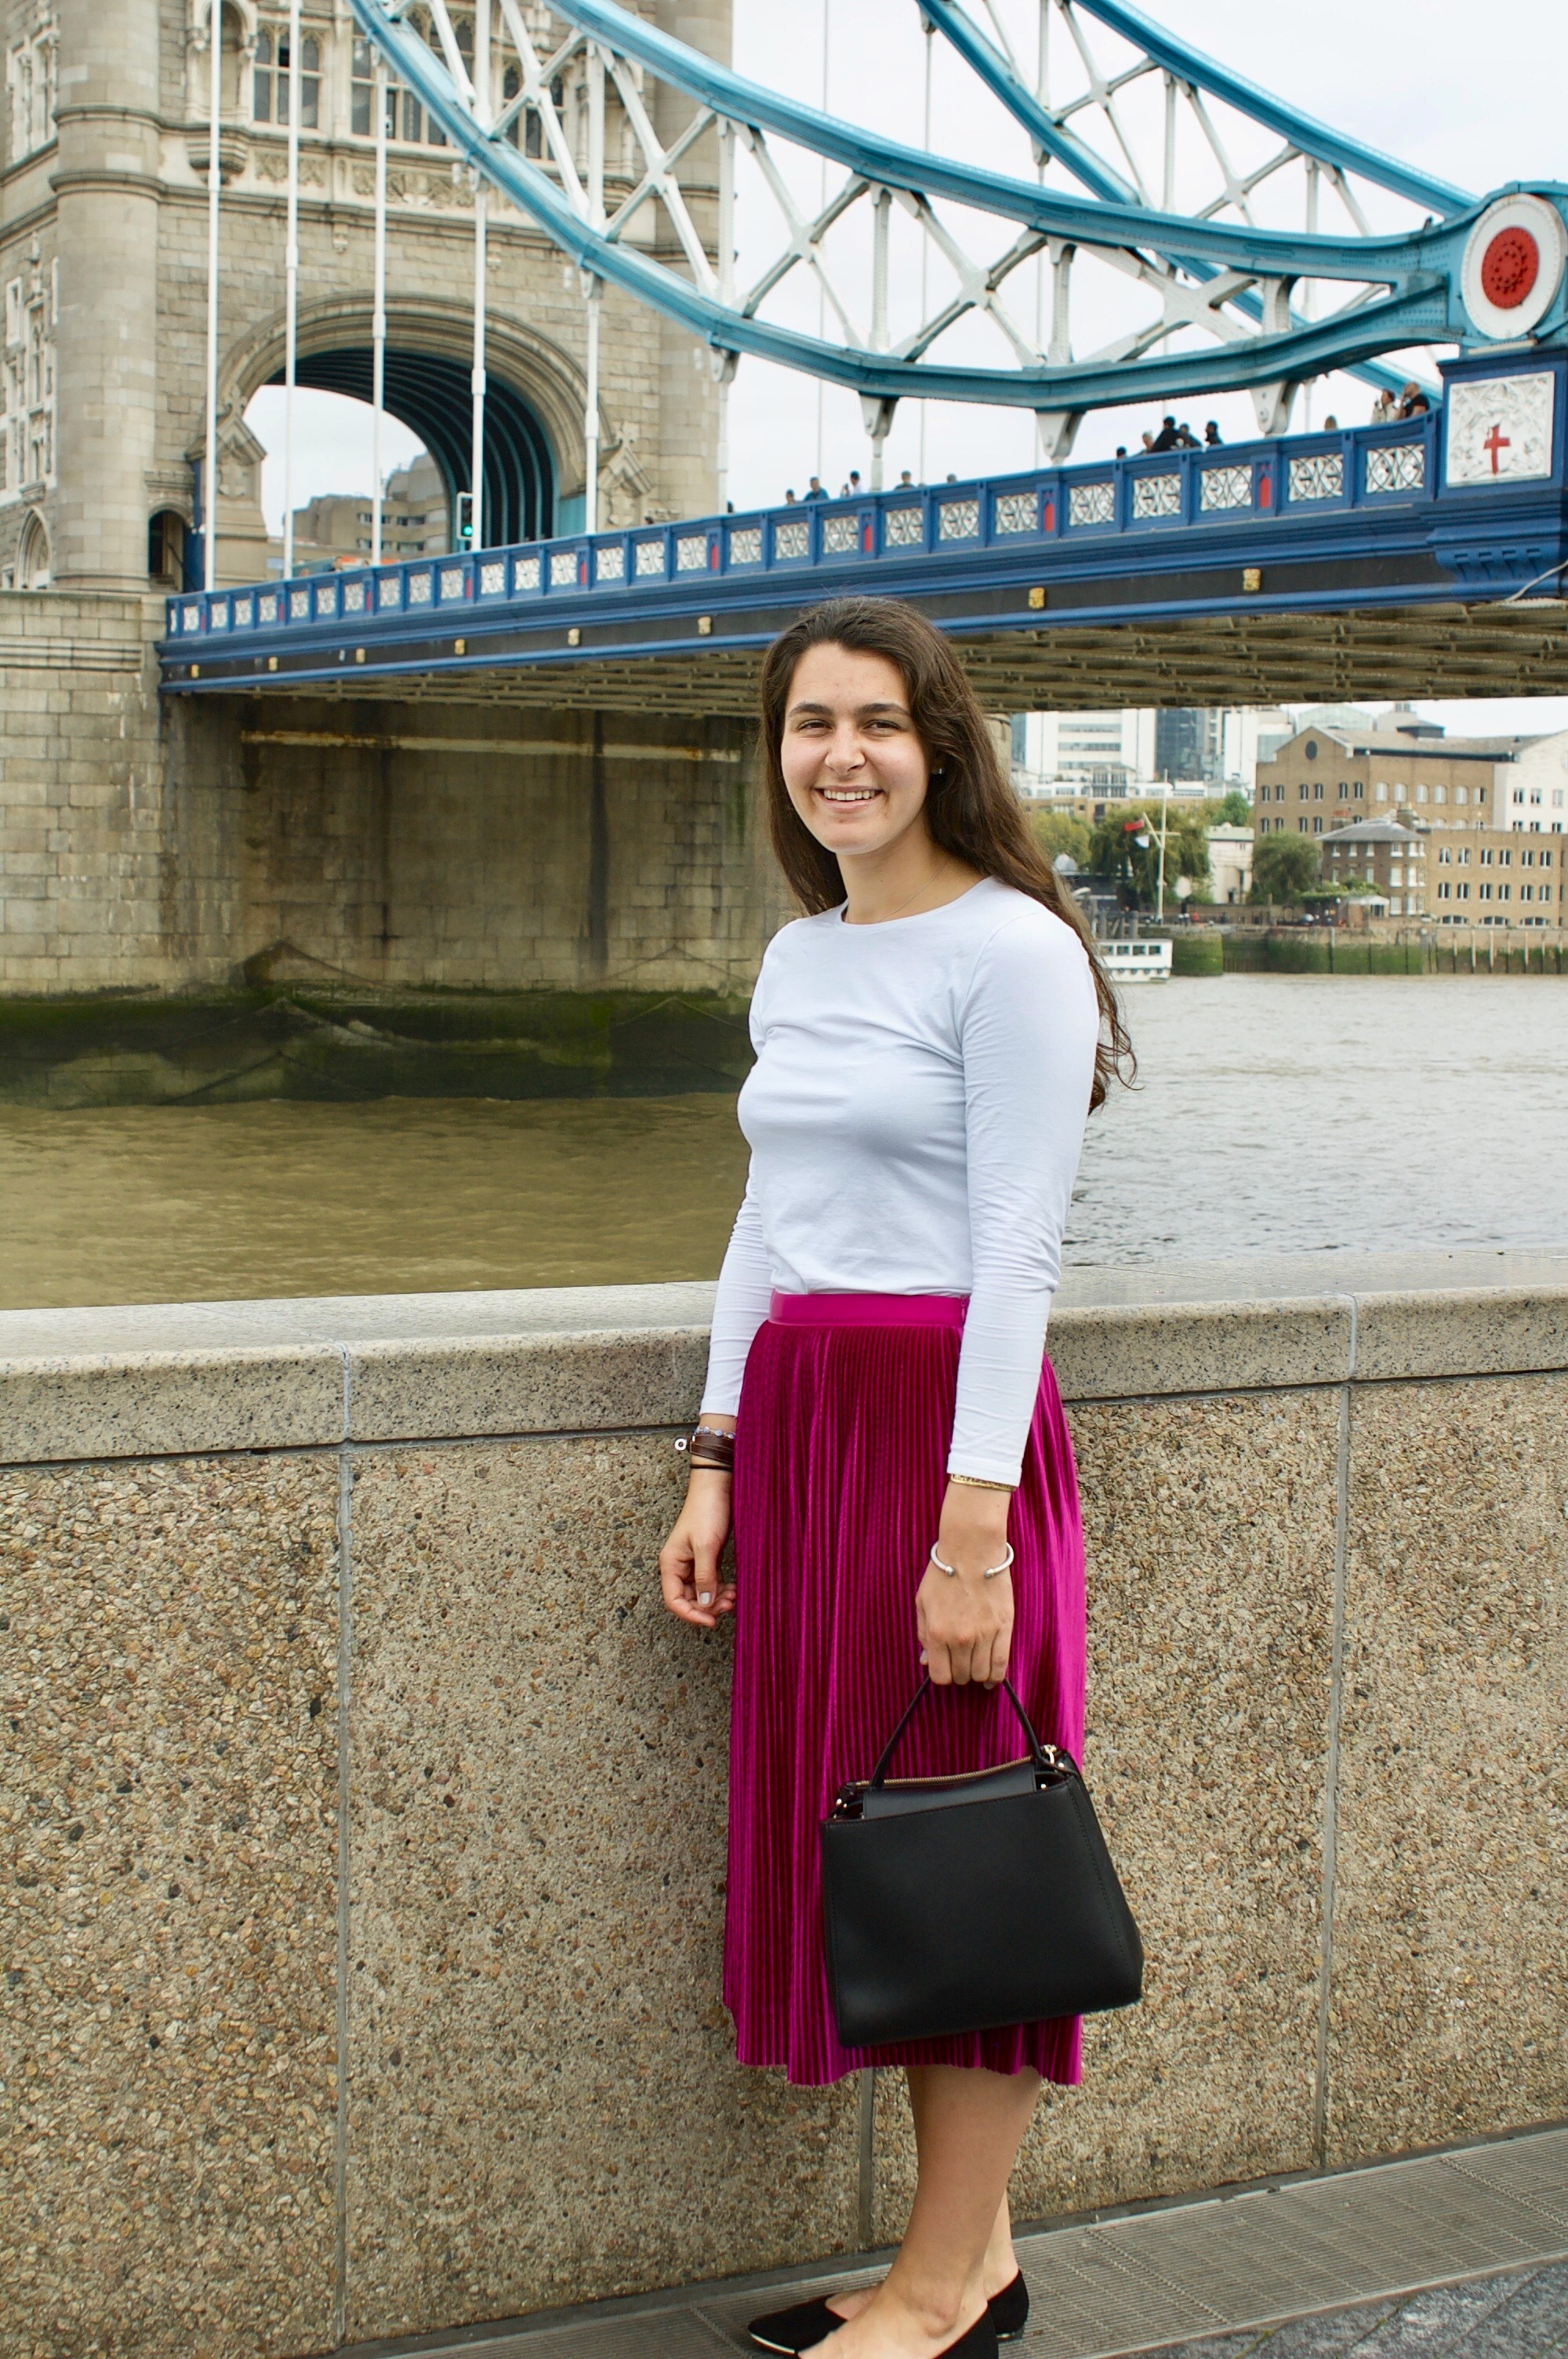 London, UK 10.14.17    My 21st birthday skirt! I was determined to wear something that made me happy, so a pink pleated skirt is what I chose! Shop my favorite pleated skirt look and basic black bags that go with every outfit  here!